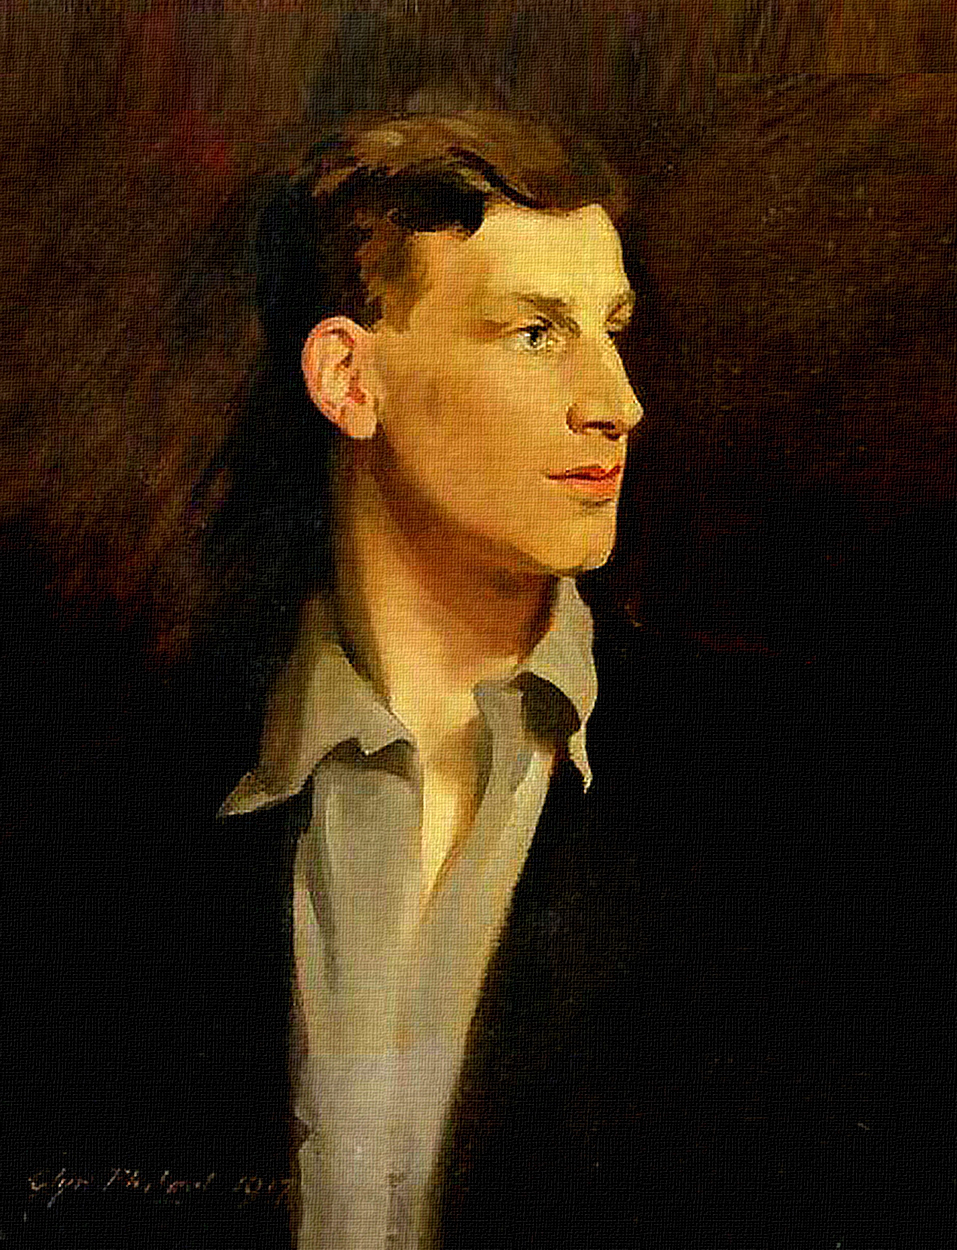 a critique of the life and work of siegfried sassoon For many students of modern british letters siegfried sassoon (1886-1967)   postwar period owes something to a general preference among literary critics for  the introspective individualism of memoir and autobiography (especially insofar  as.